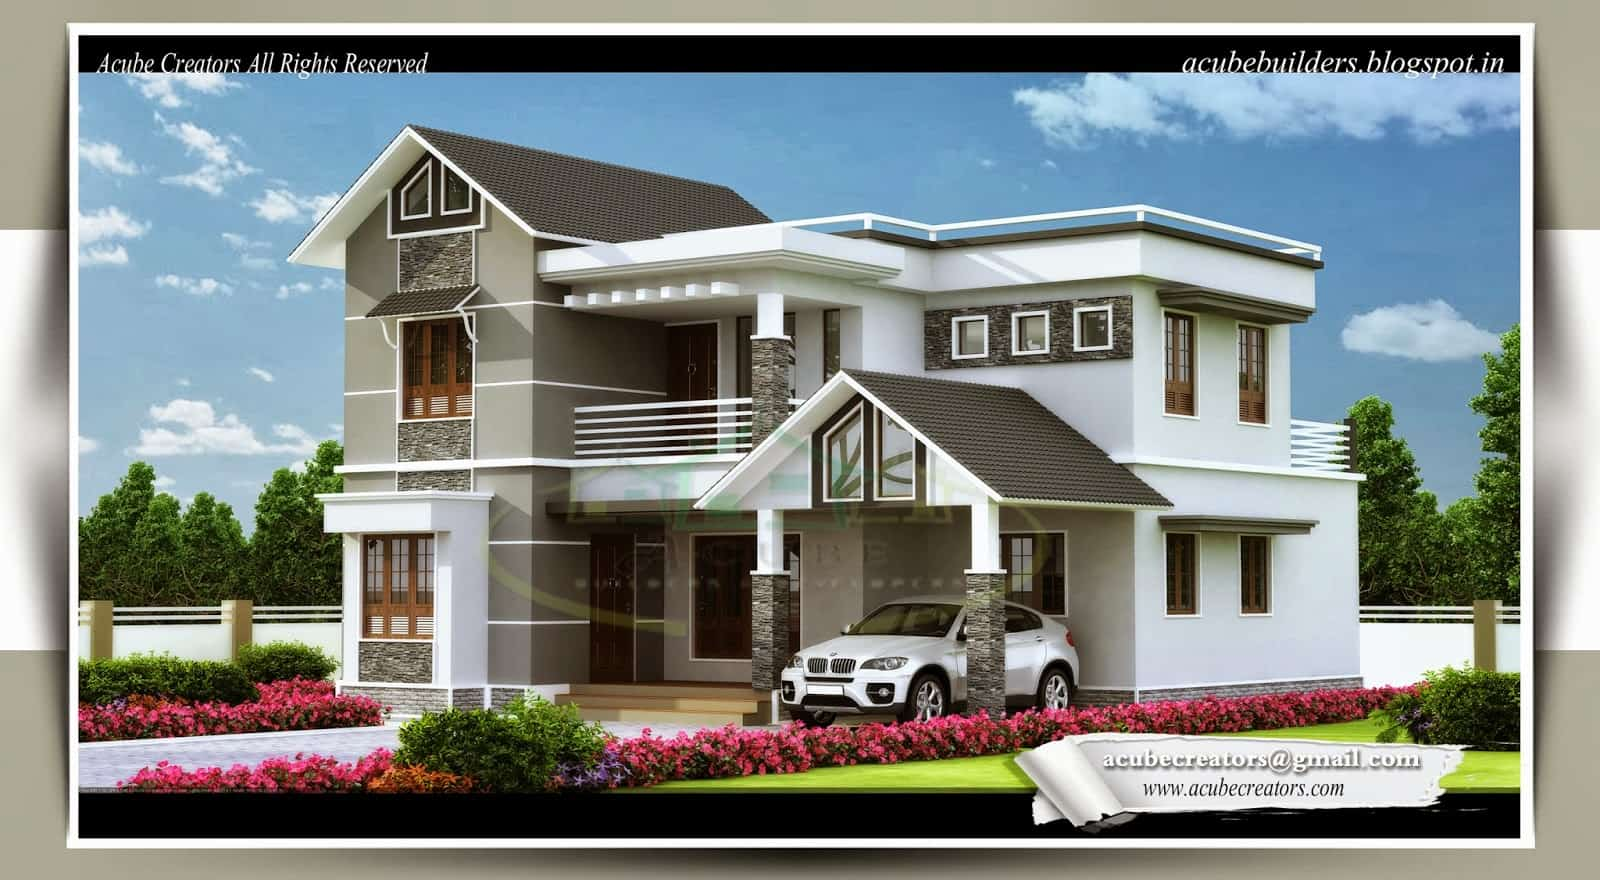 Kerala house designs memes for Www kerala house designs com